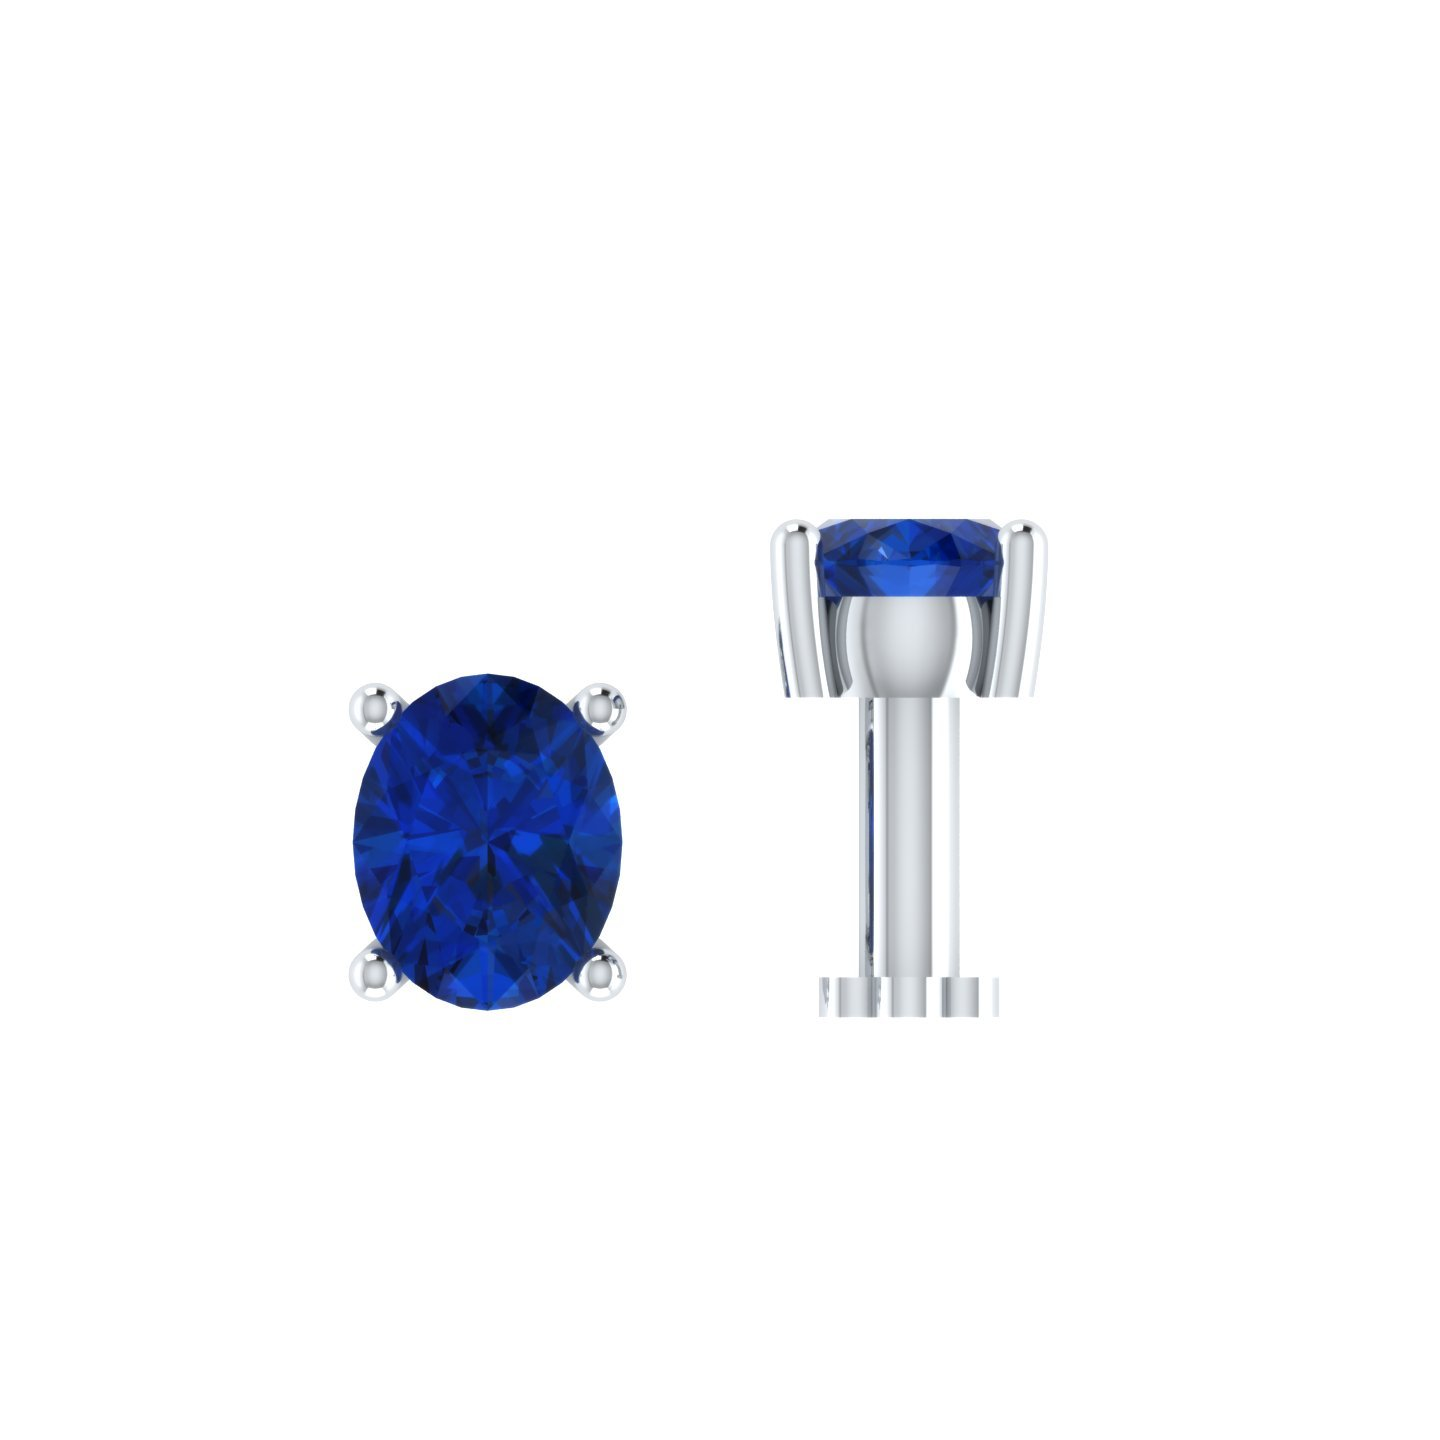 Silvernshine Jewels 0.15 Ct Sapphire Solitaire Nose Bone 925 Sterling Silver Screw Stud Piercing Ring Pin